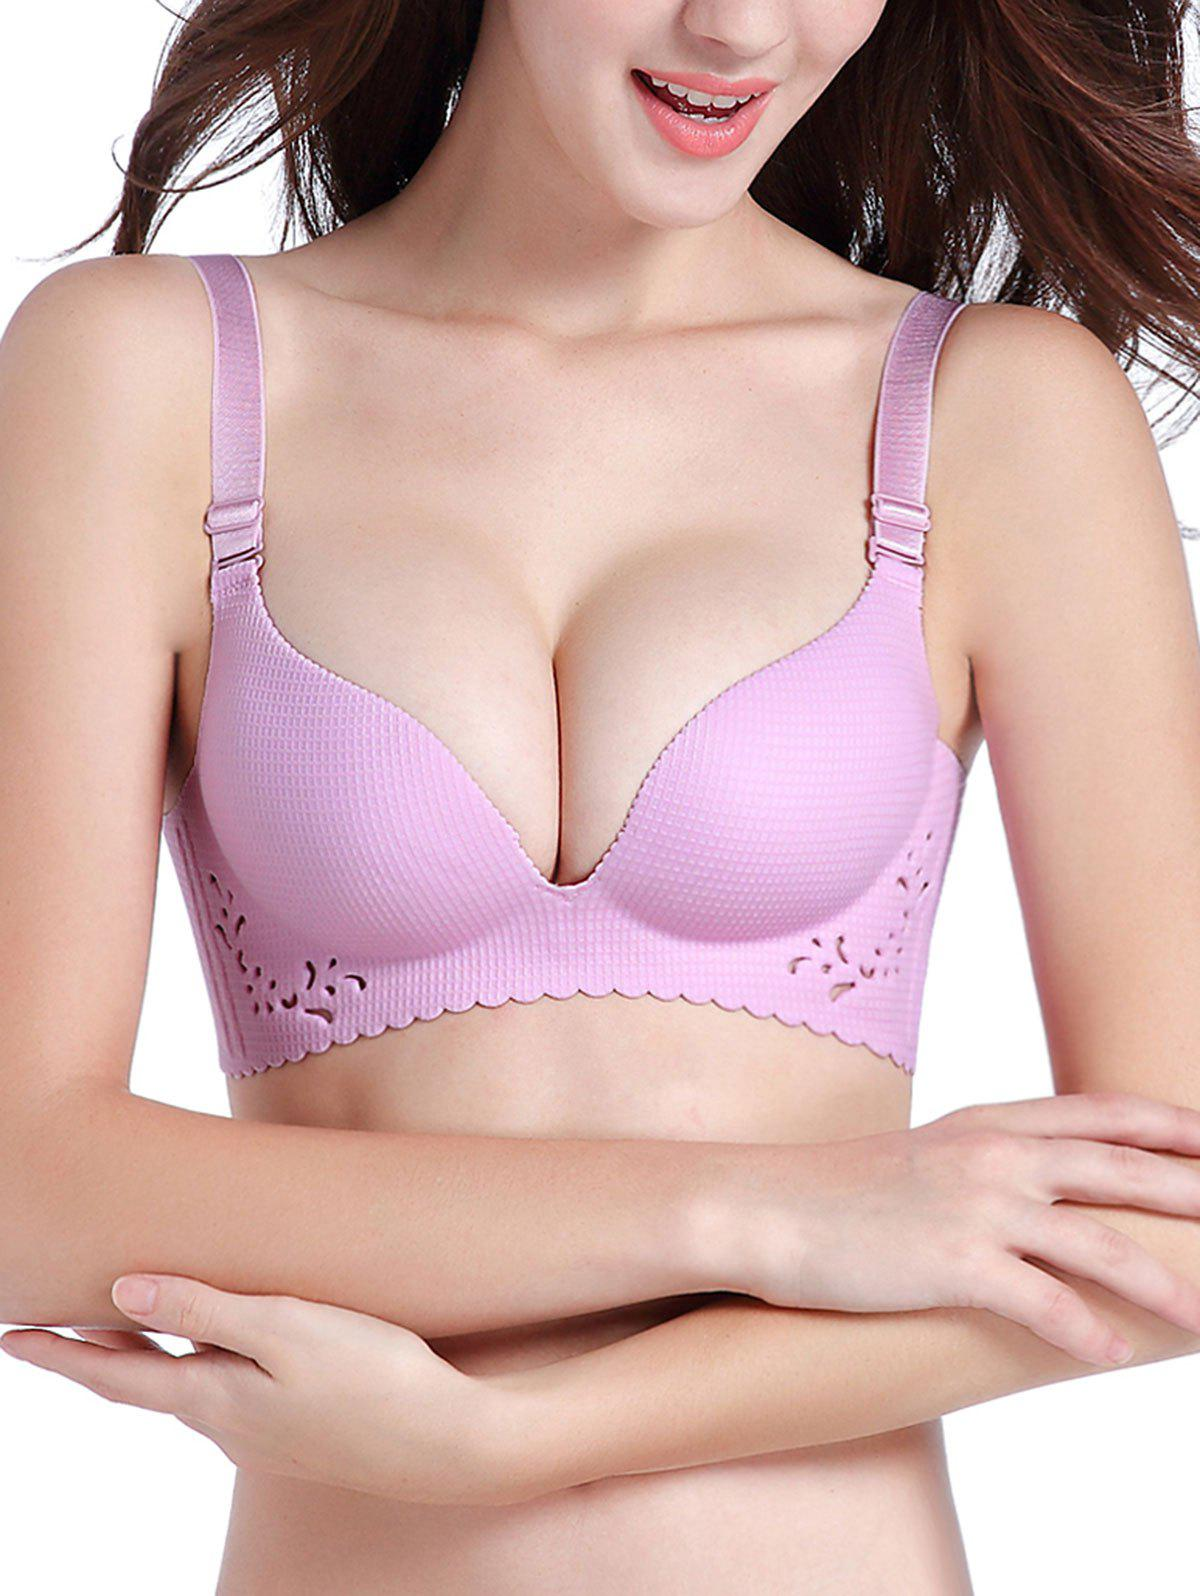 Scallop Trim Openwork Seamless Bra - LIGHT PURPLE 70B